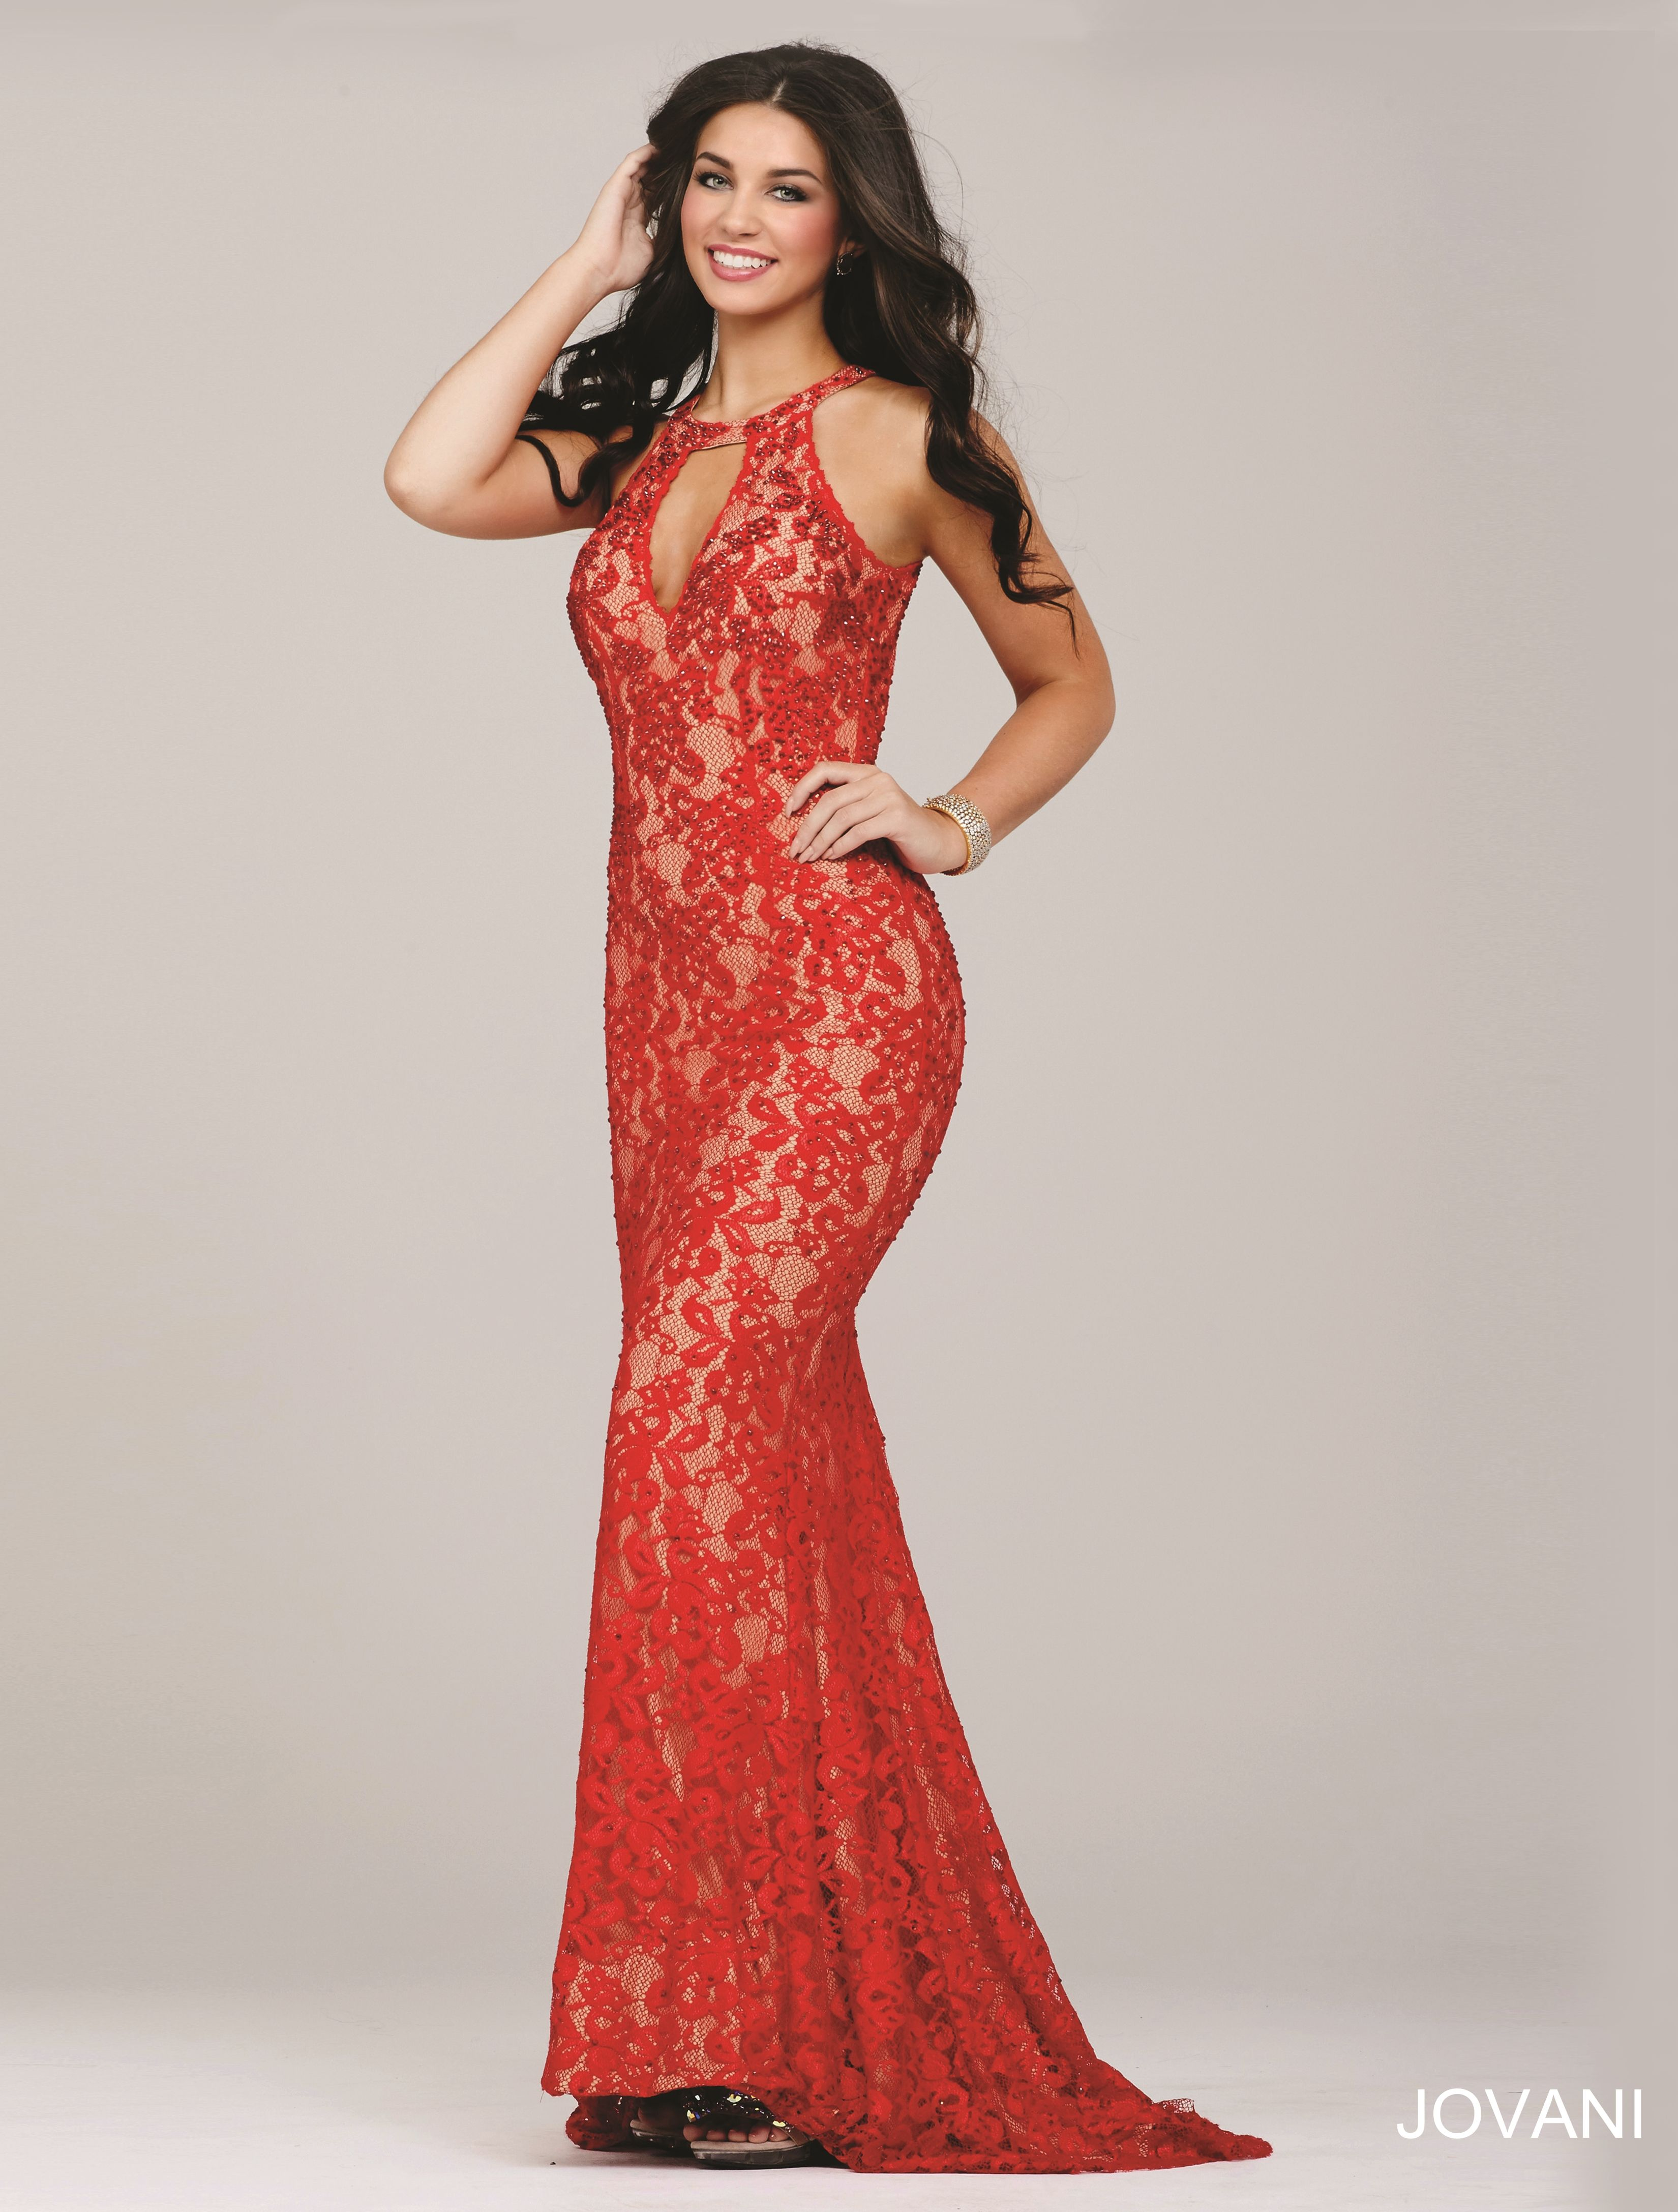 Jovani prom dress available at whatchamacallit boutique promk